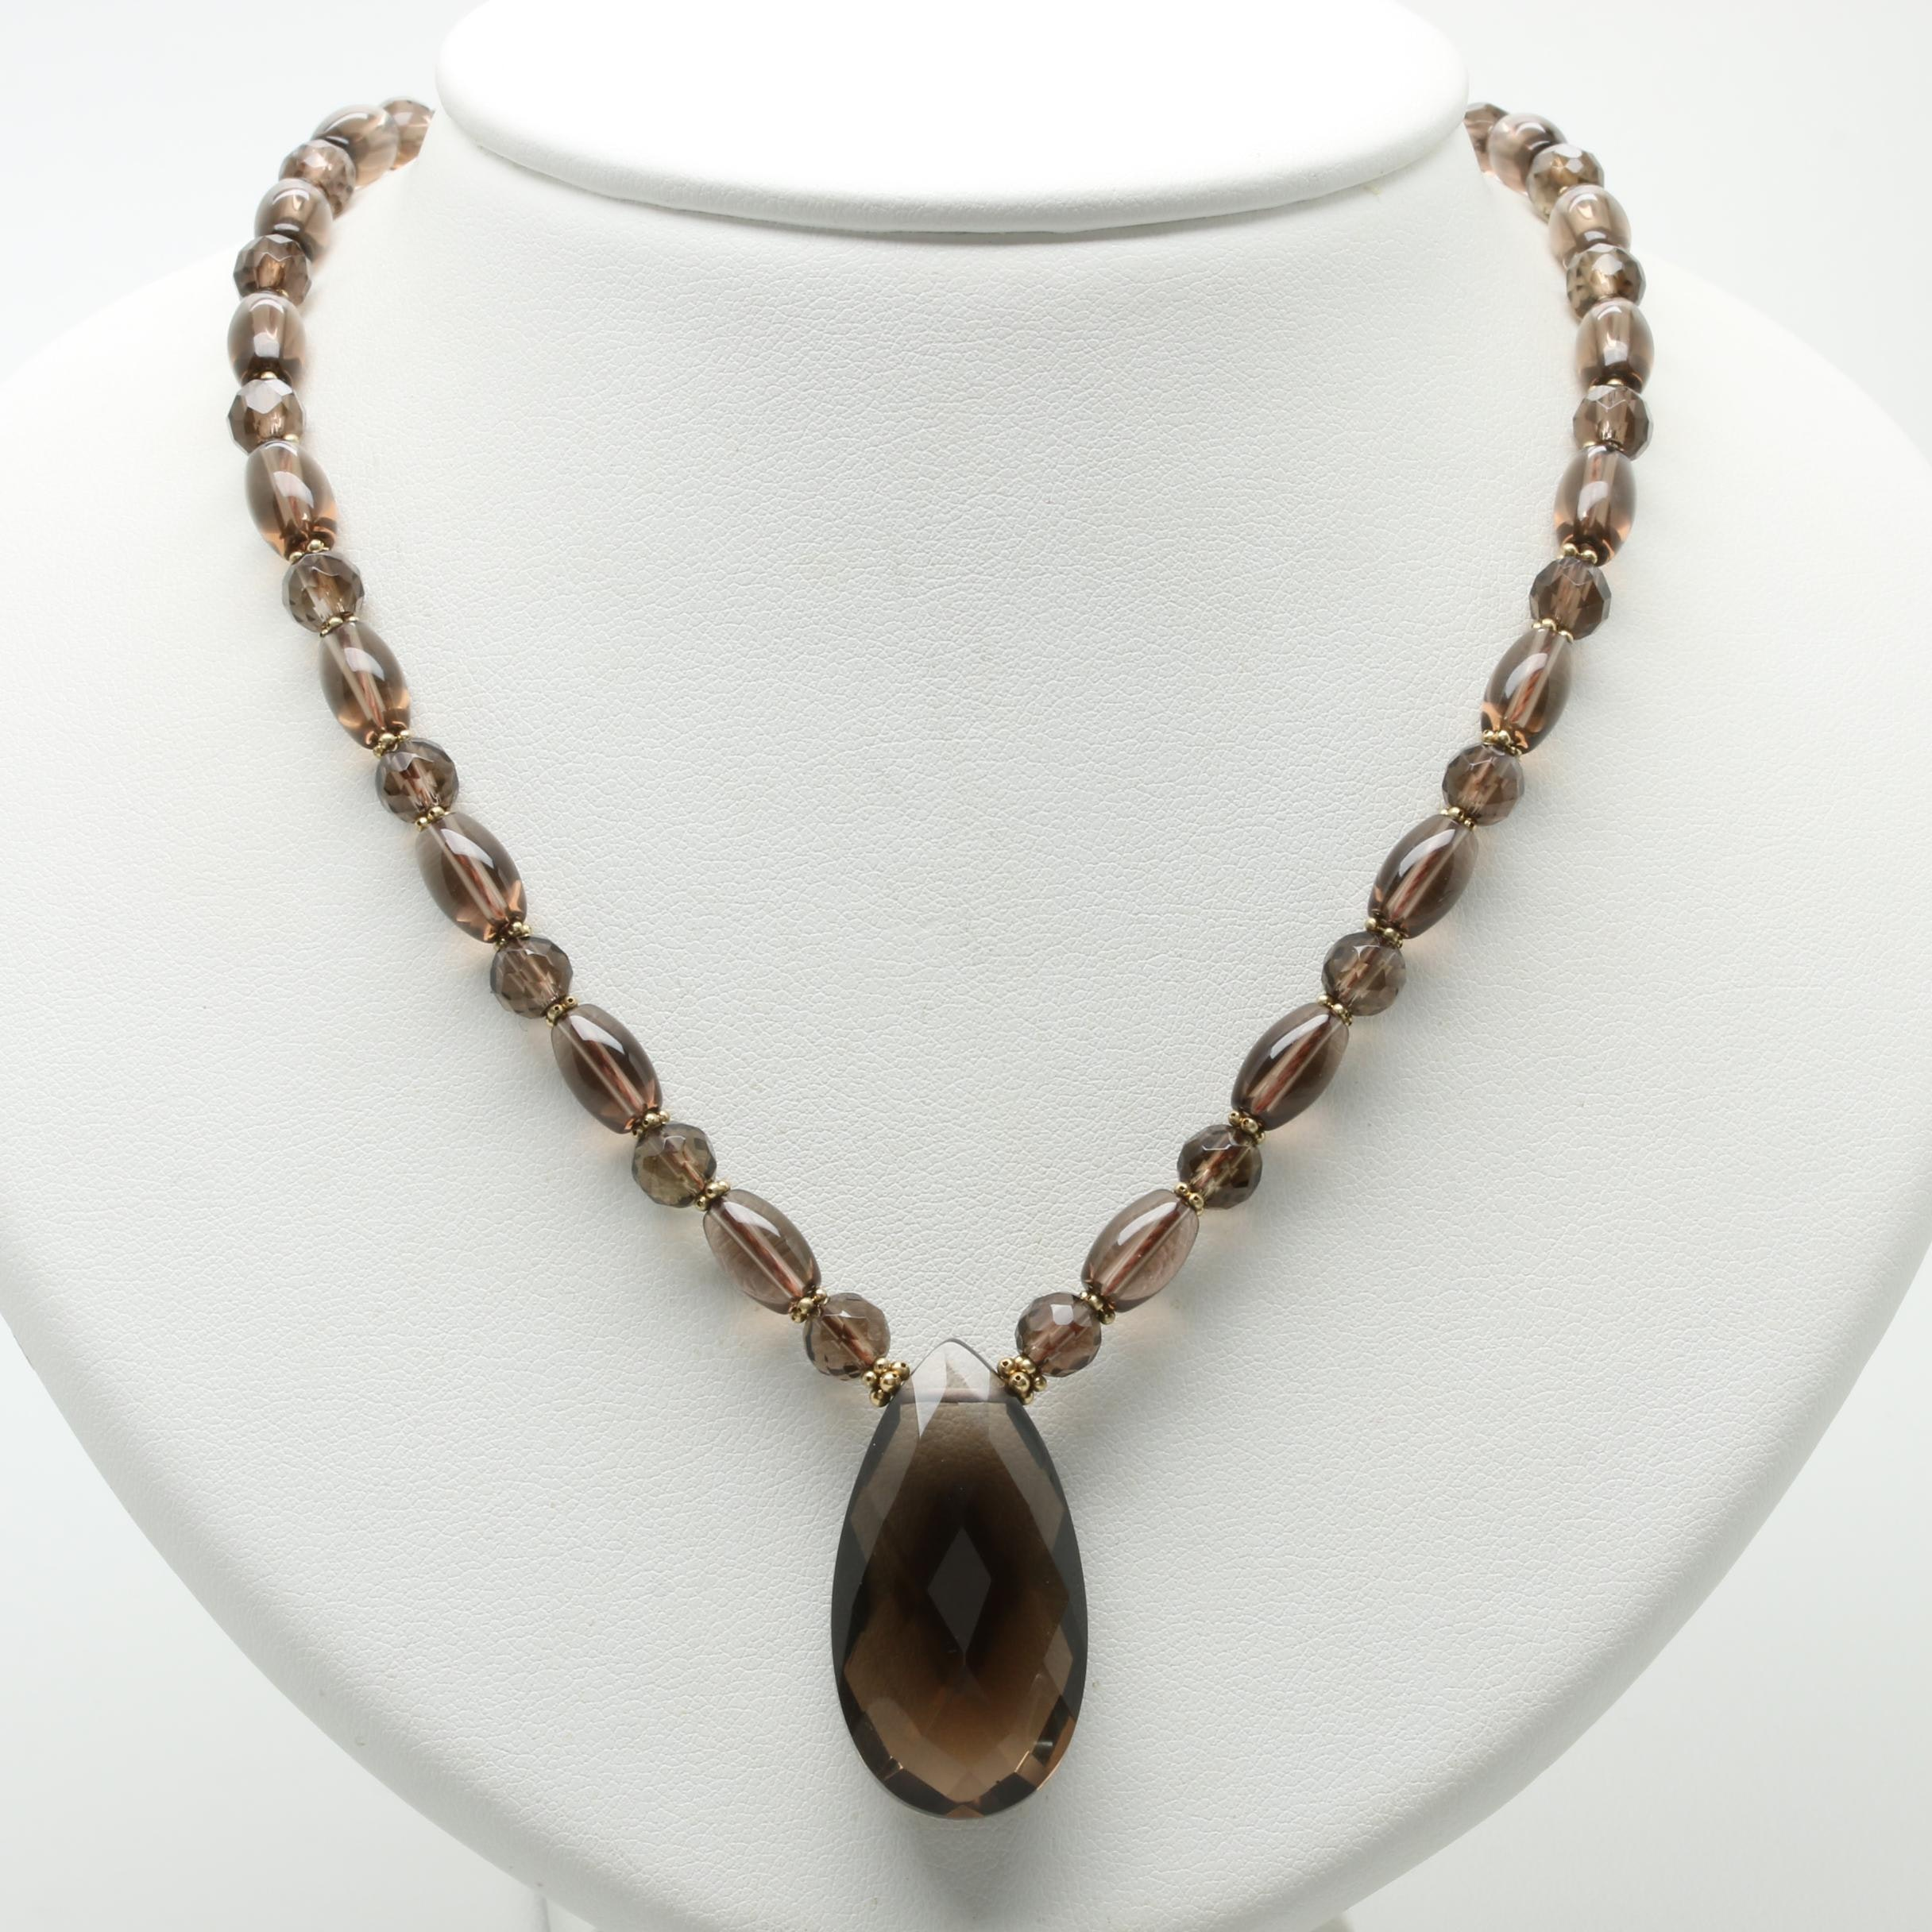 Smoky Quartz Beaded Necklace with 14K Yellow Gold Clasp